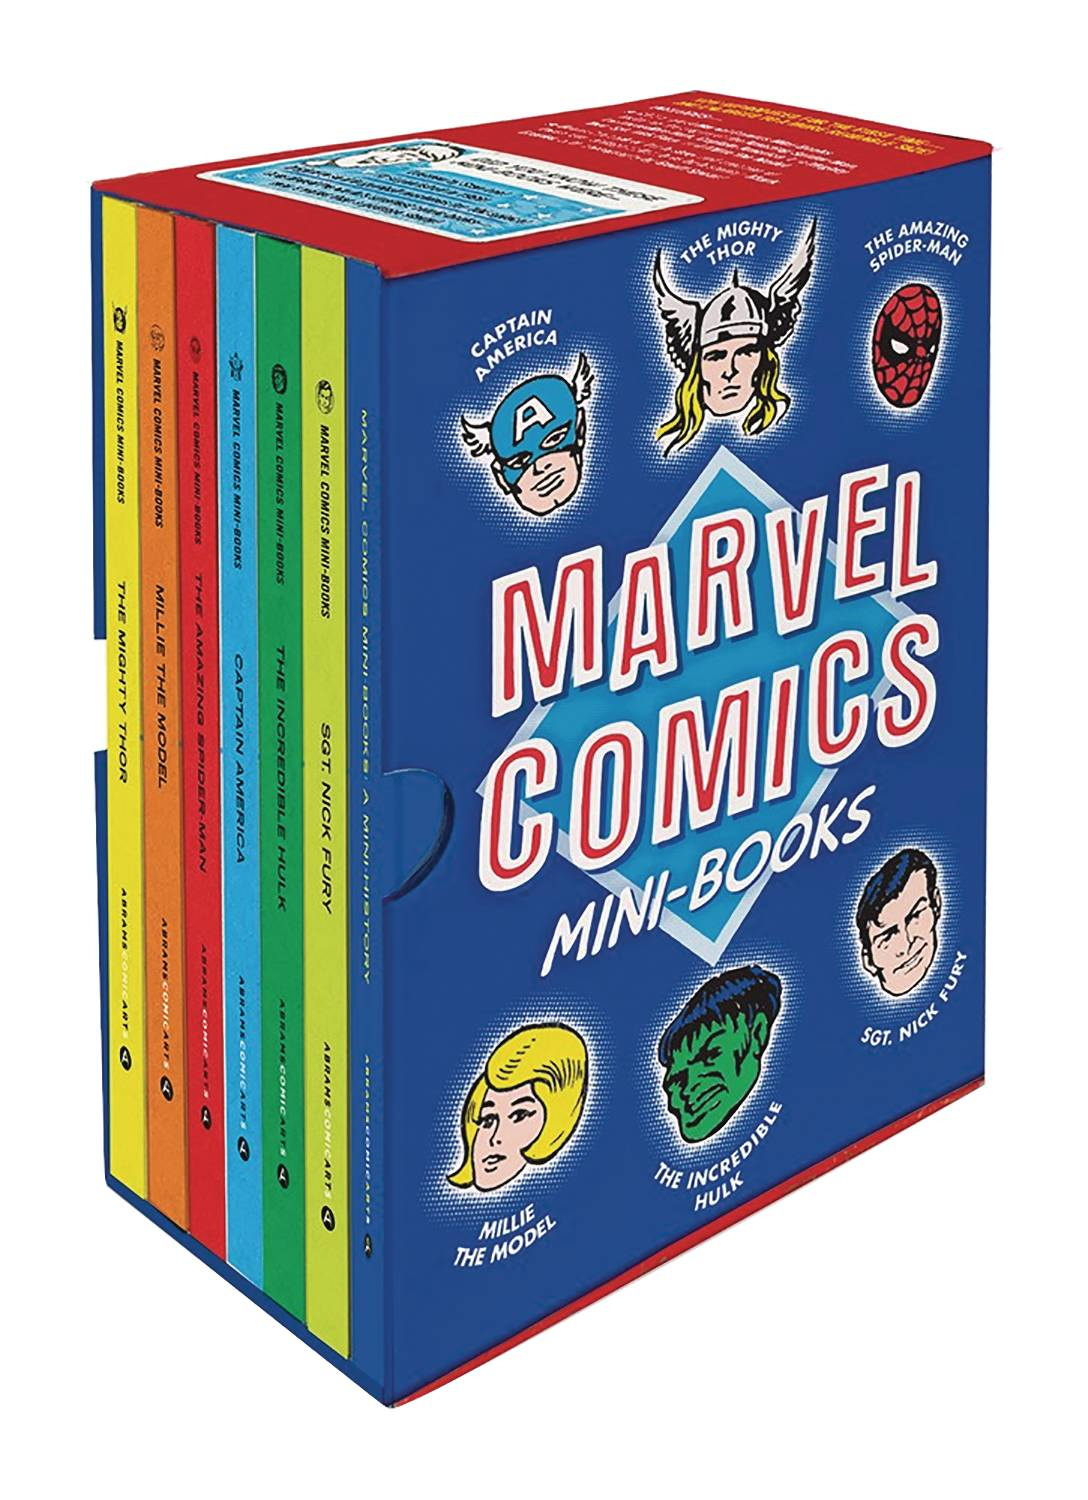 MARVEL COMICS MINI-BOOKS COLLECTIBLE BOXED SET